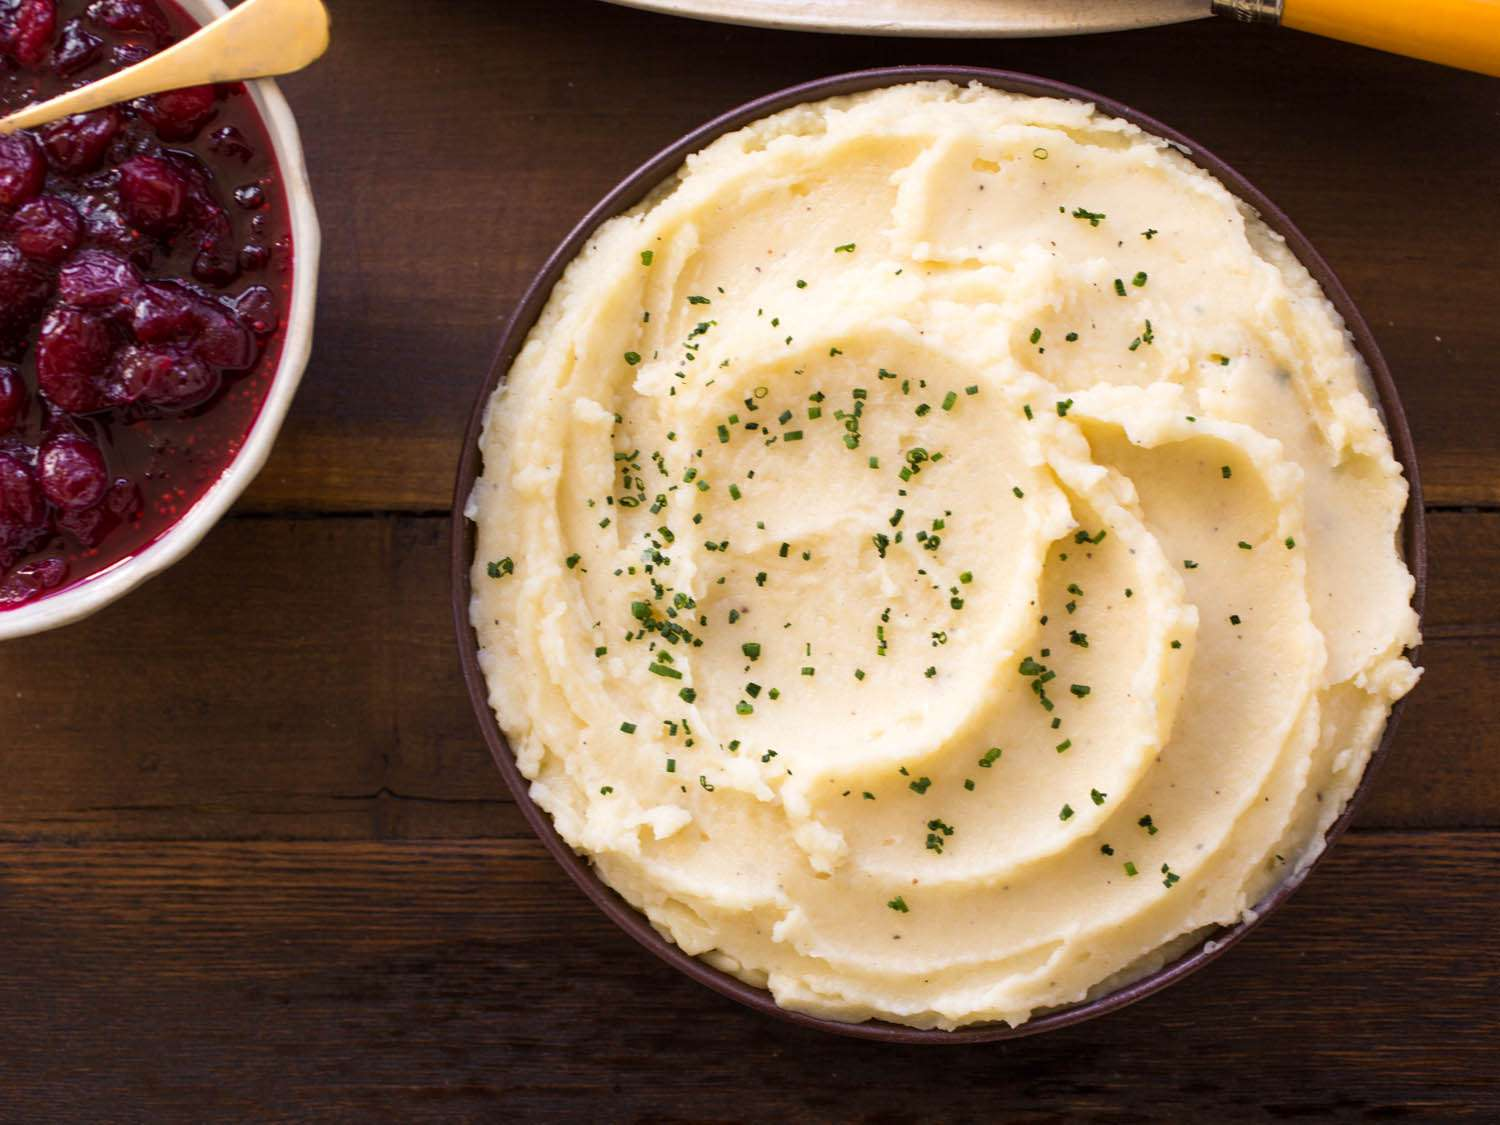 Overhead shot of a bowl of mashed potatoes and a dish of cranberry sauce